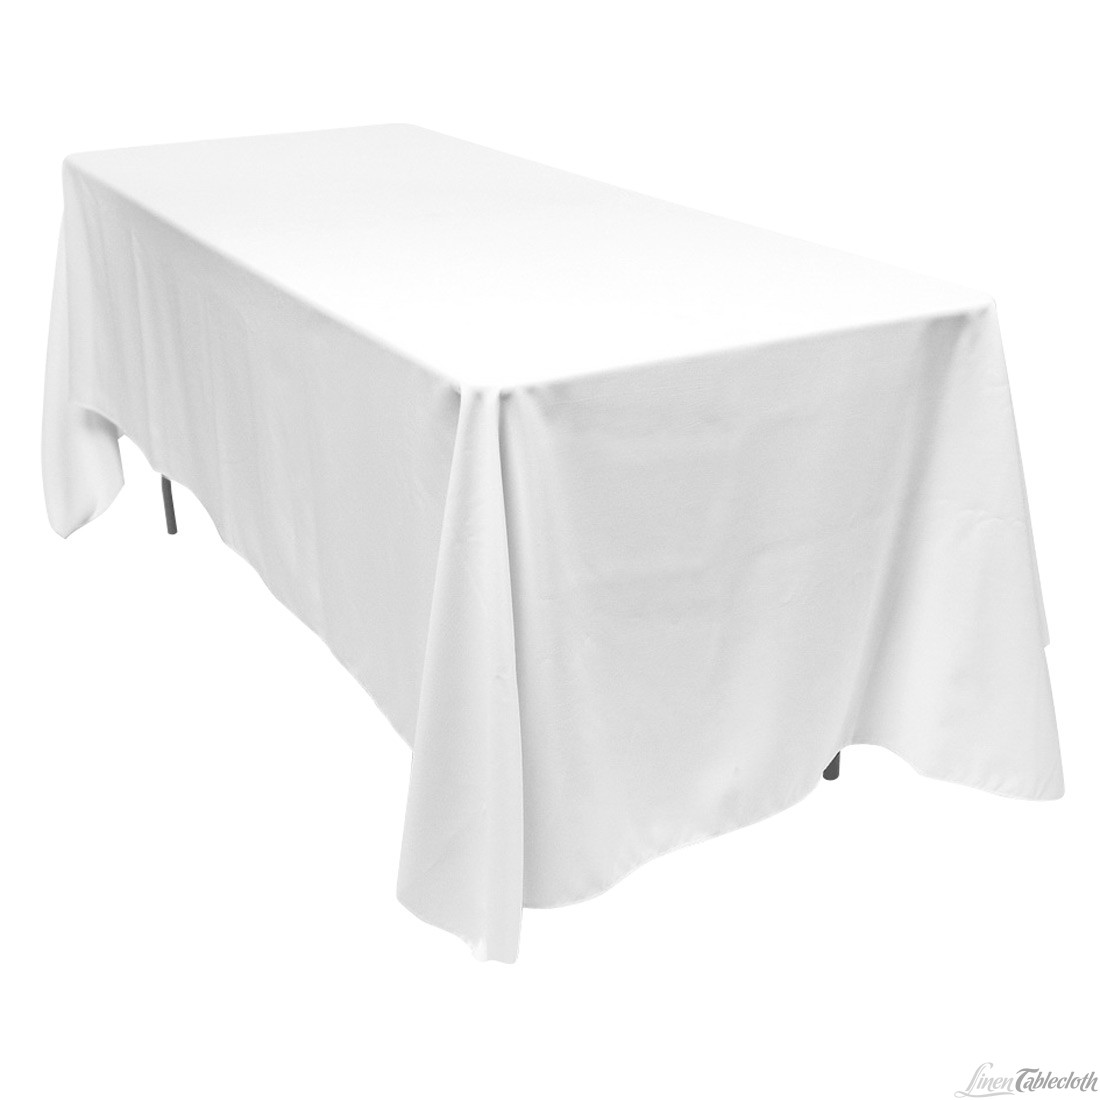 Merveilleux White Rectangular Linen White Rectangular Linen Price $40.00 + GST QTY 9    More Available Upon Request